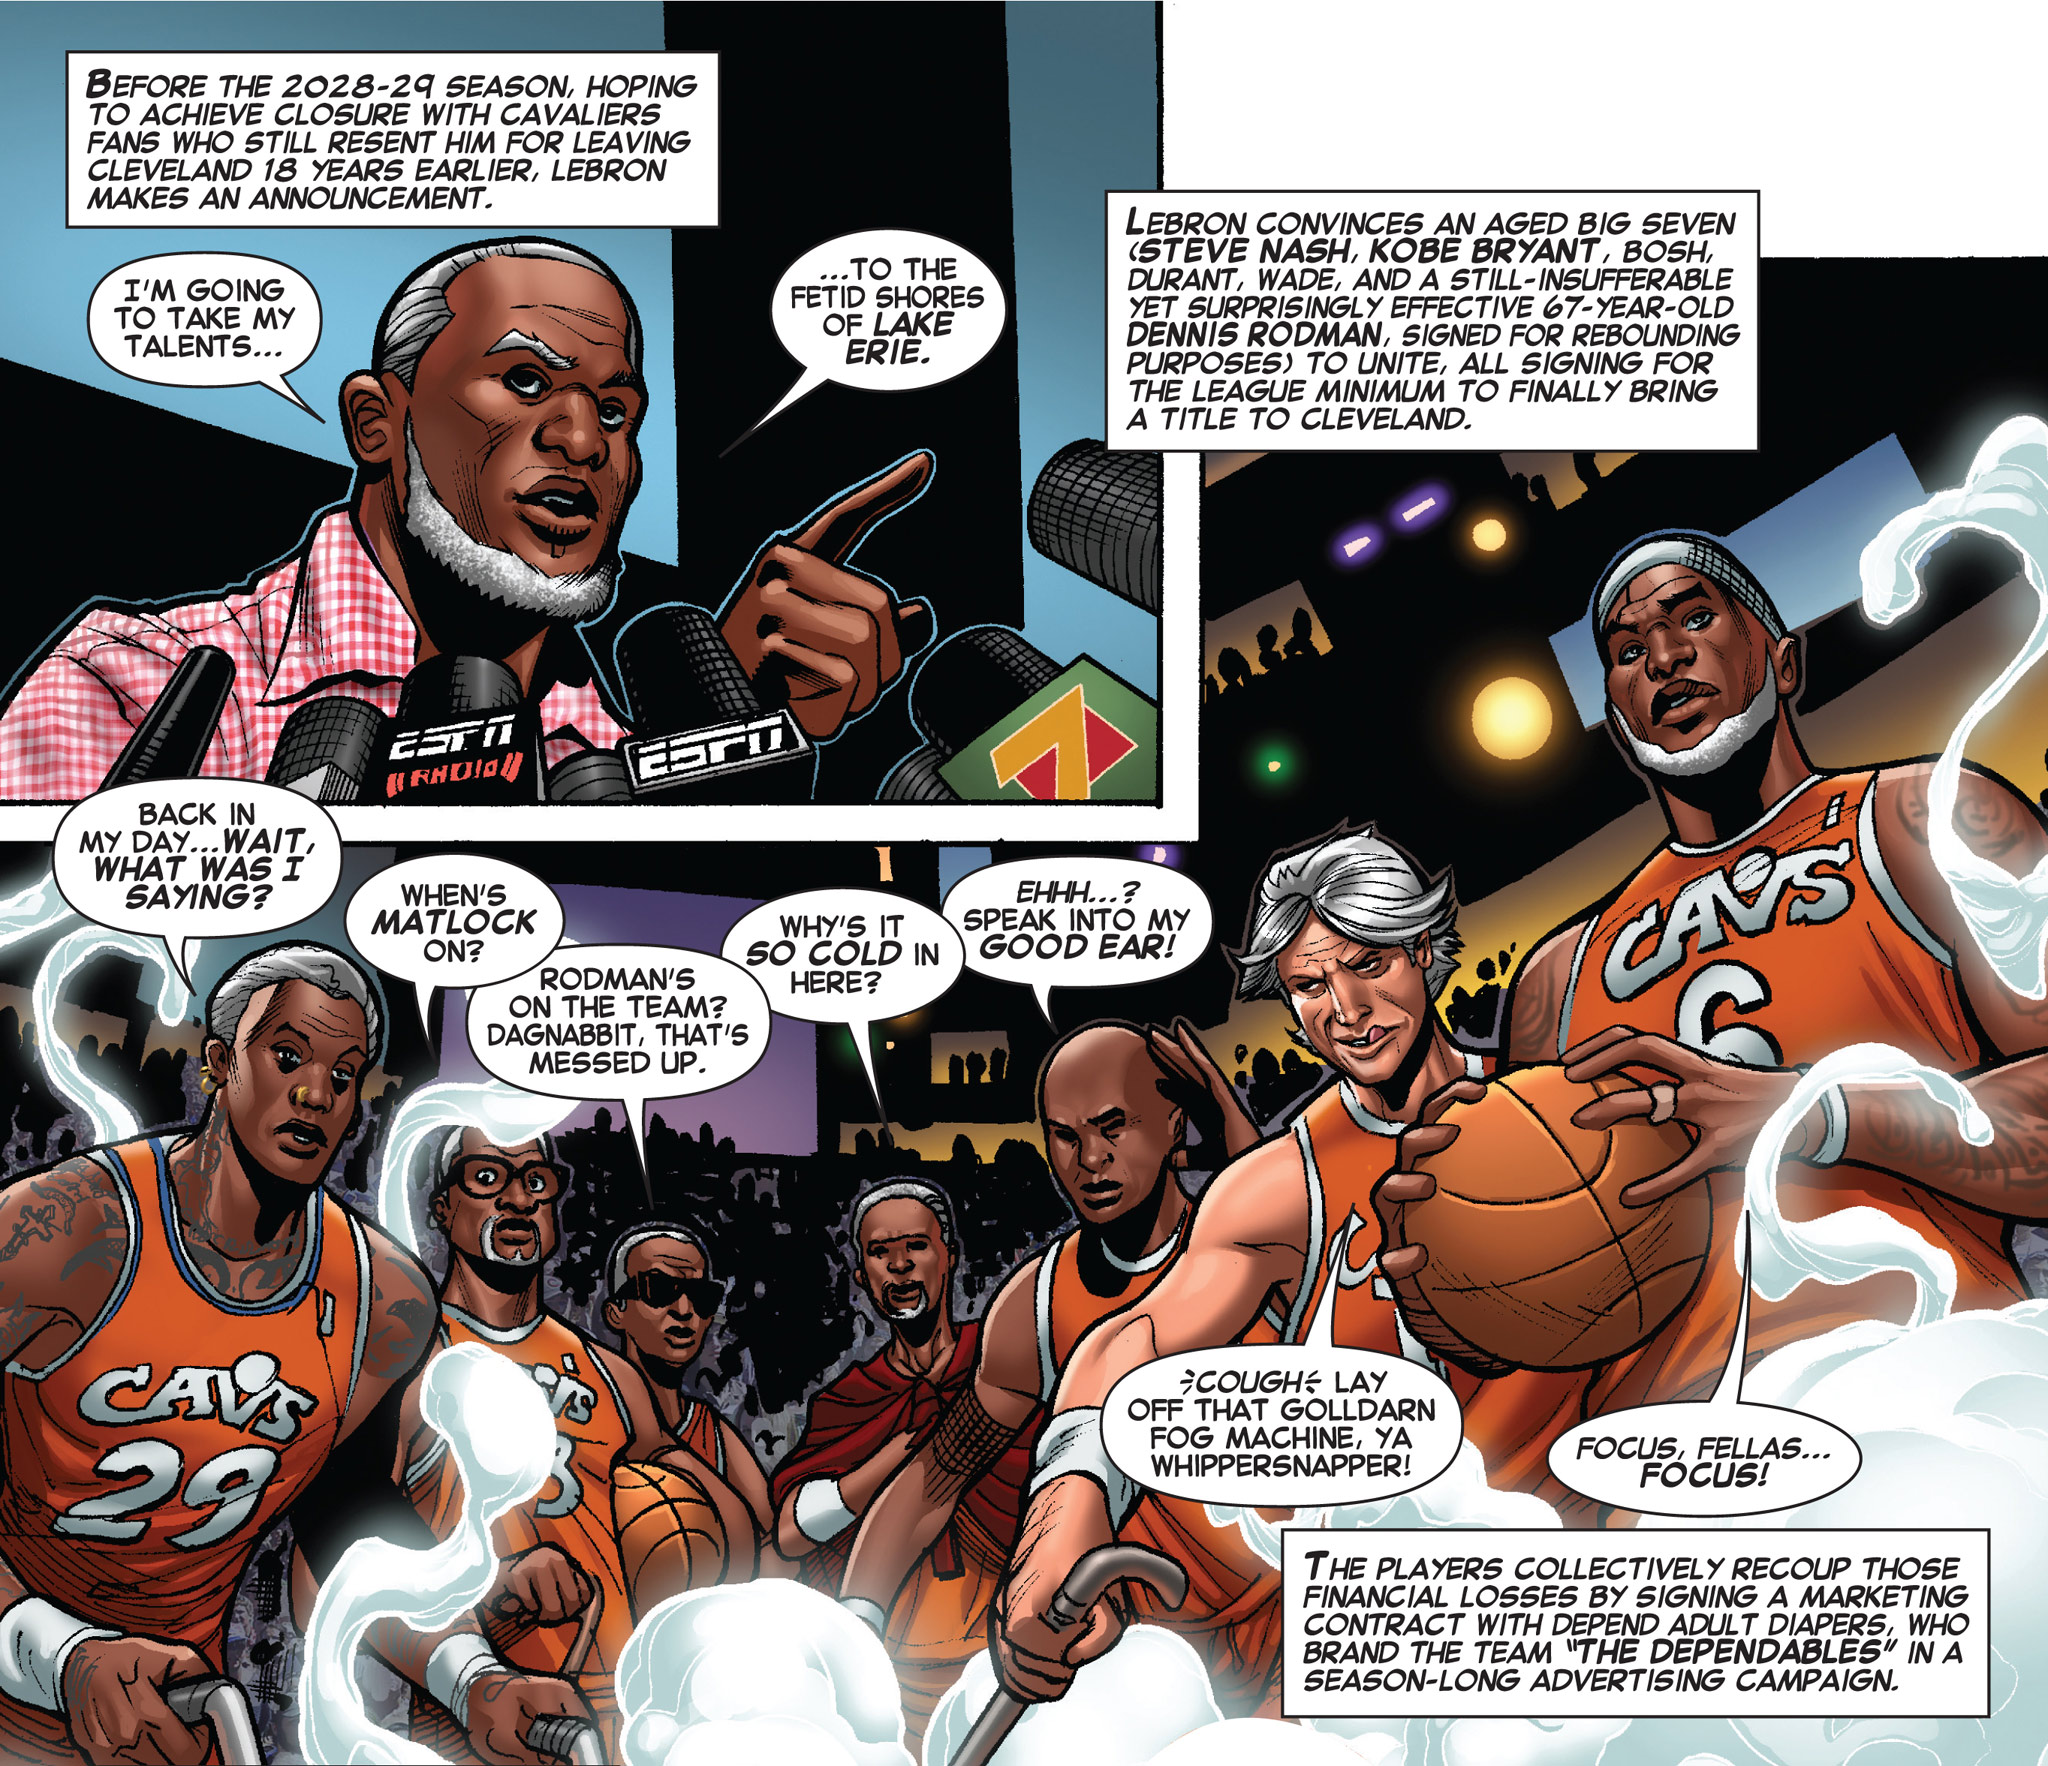 LeBron: King of the Rings - ESPN The Magazine and Marvel